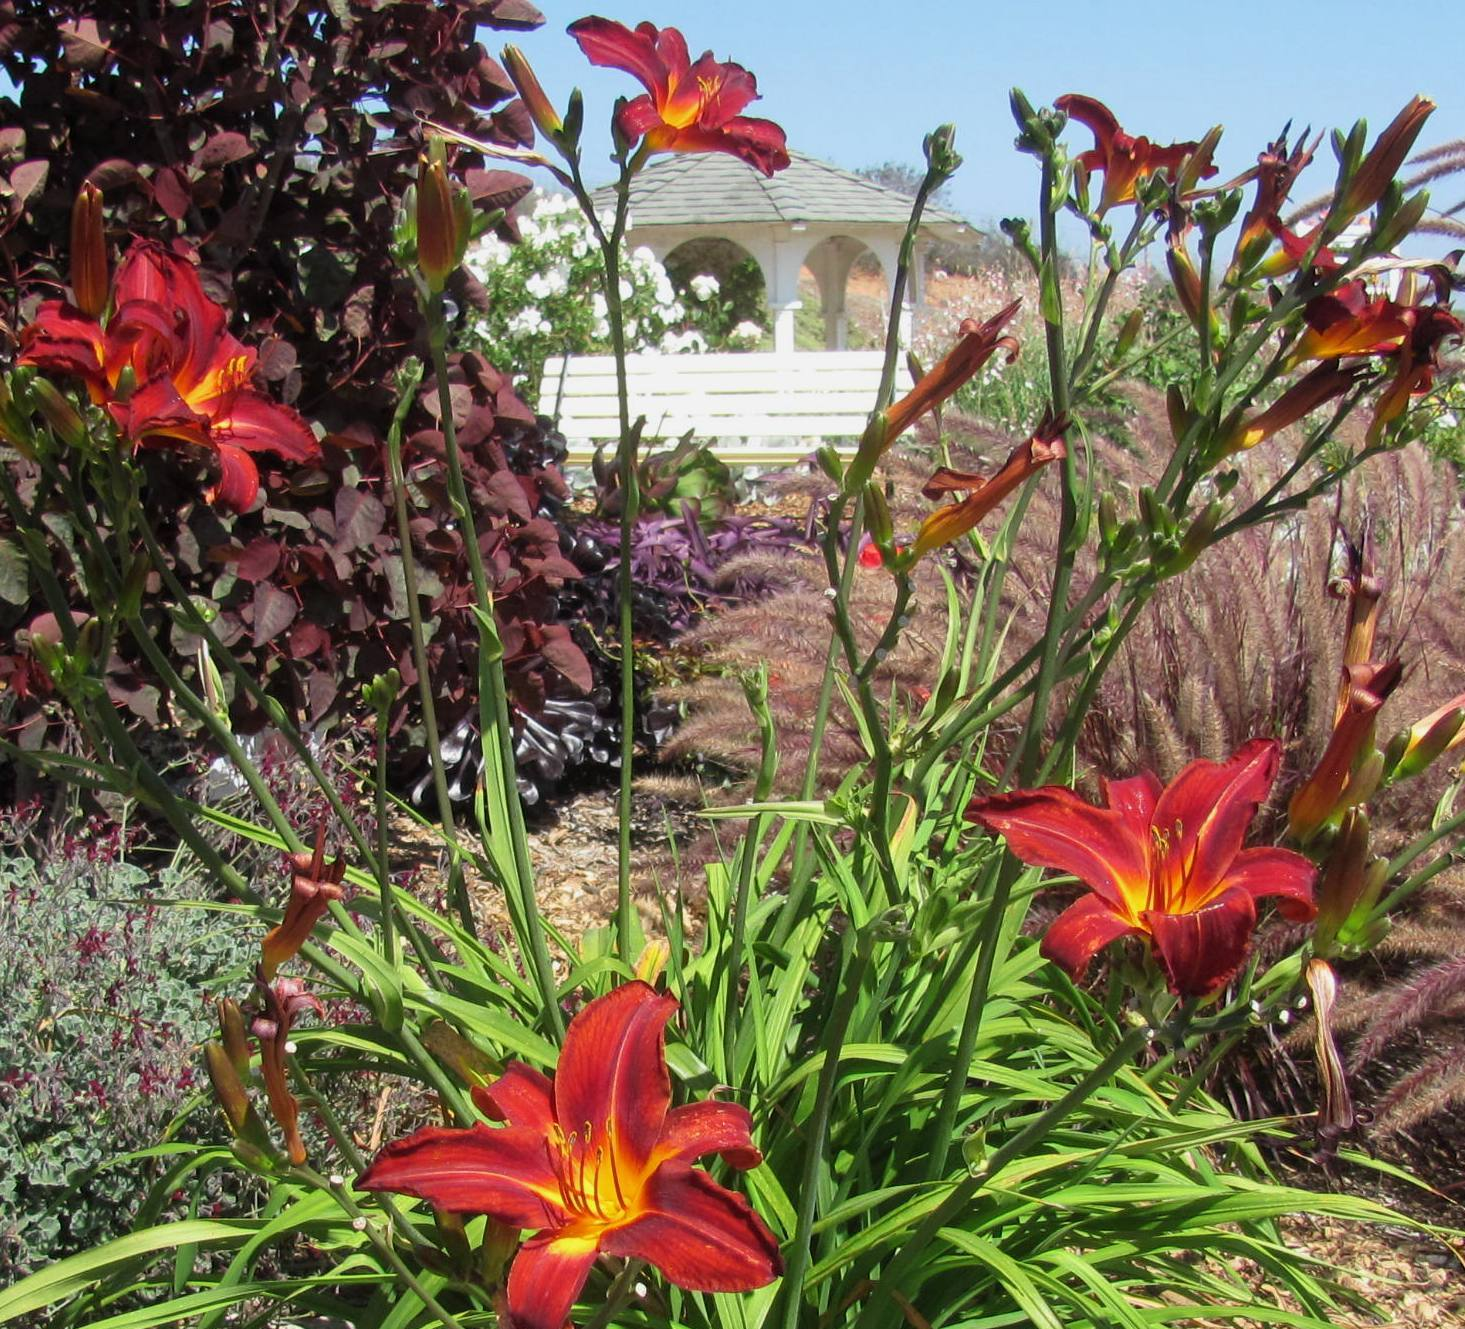 xeriscape design hot and lush yet waterwise – tropical look